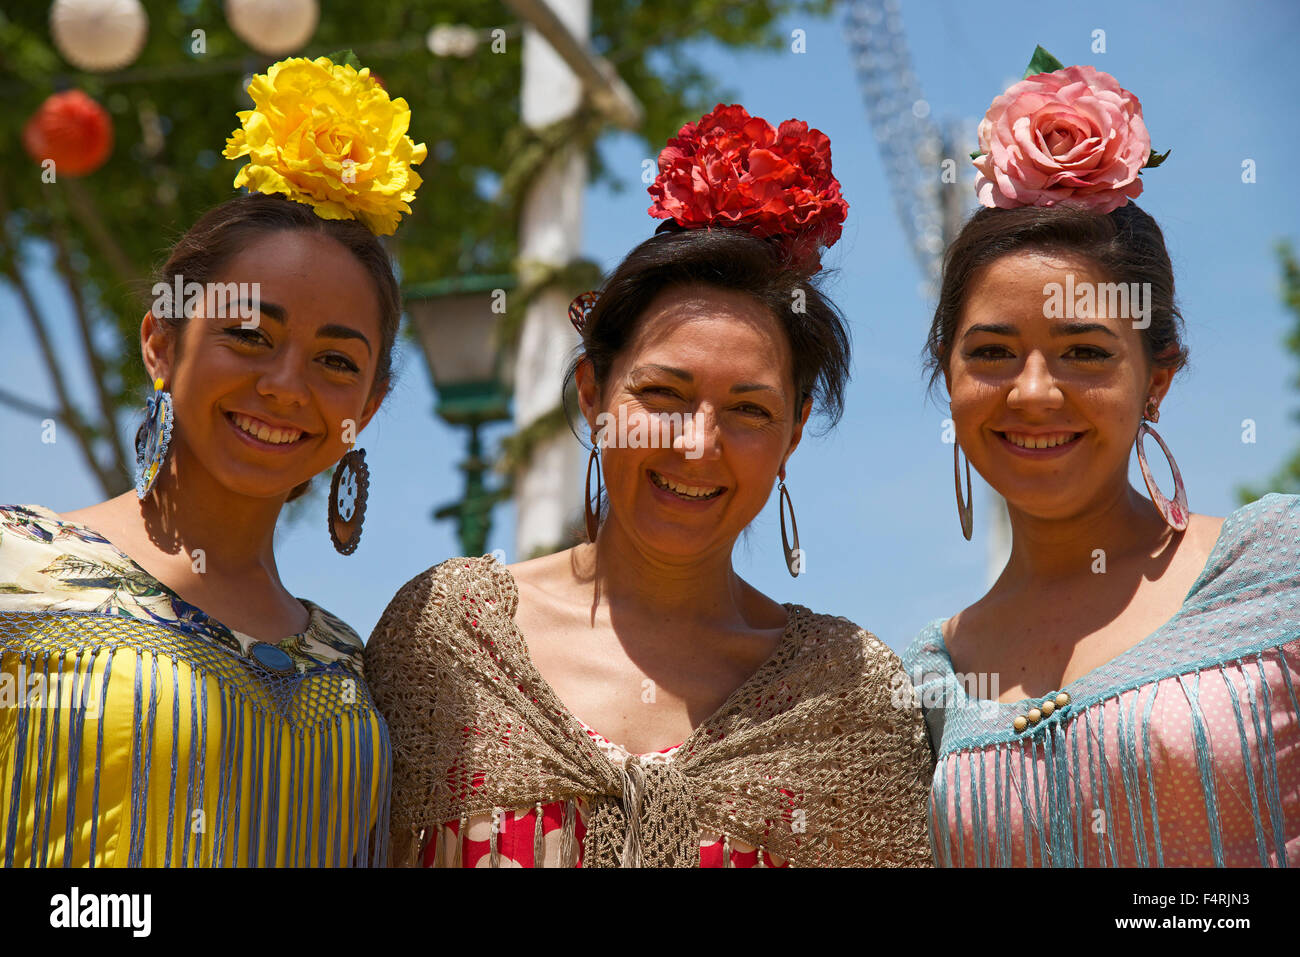 Andalusia, Spain, Europe, outside, day, woman, person, people, flamenco, tradition, traditional, Feria de Abril, - Stock Image